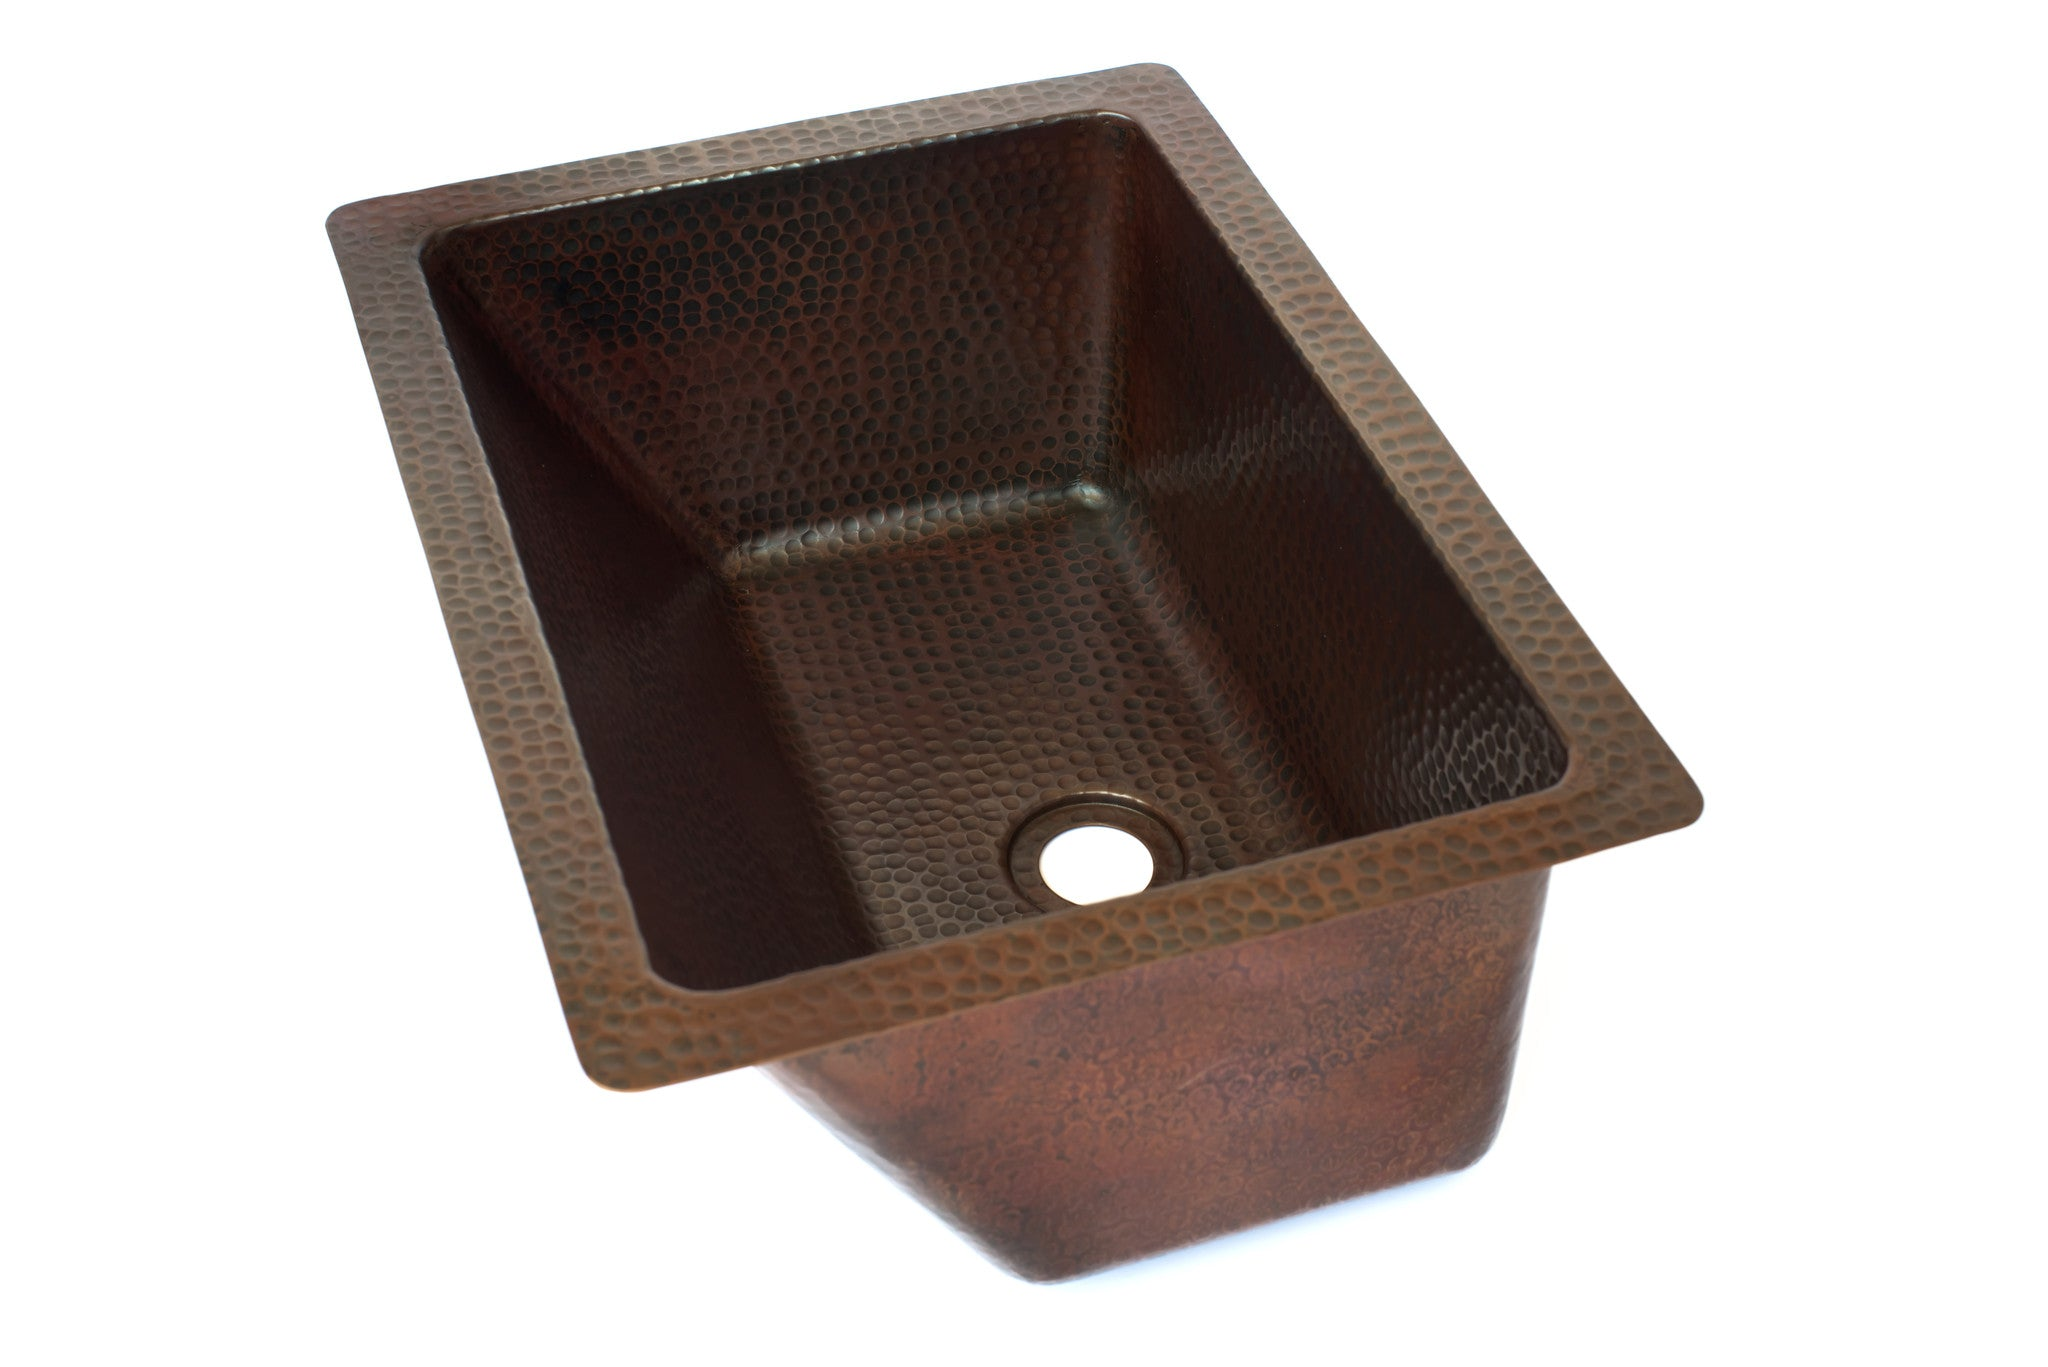 Rectangular Under Mount Bathroom Copper Sink with angled wall - 16 x 12 x  7